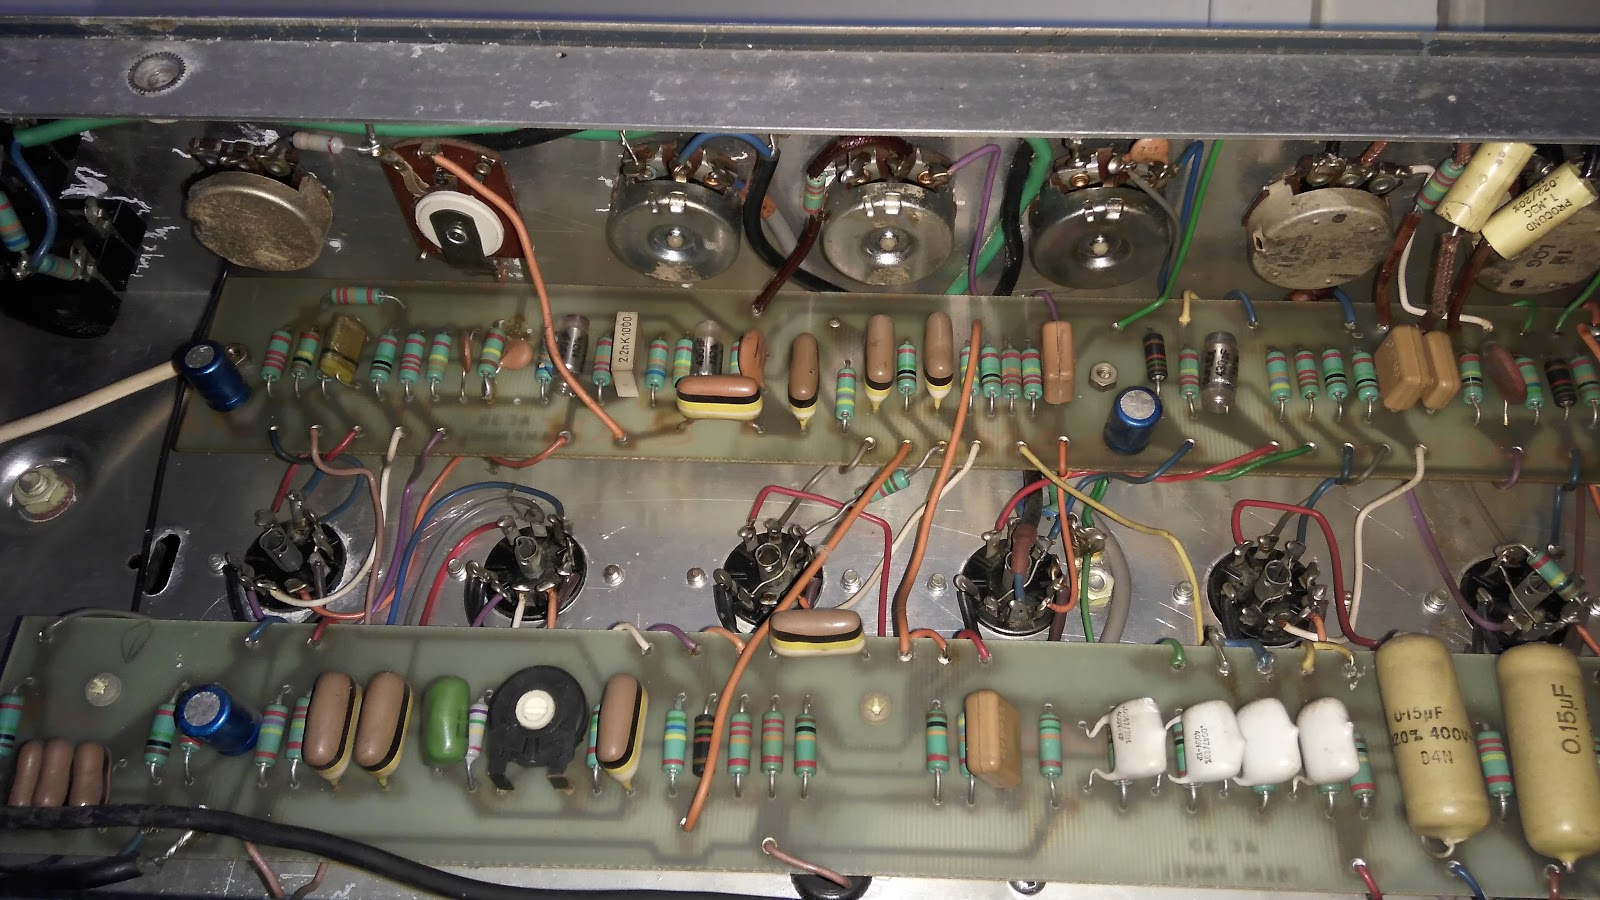 Hge Contraptions Vox Ac30 1979 Full Recap And Some Maintenance Wiring After